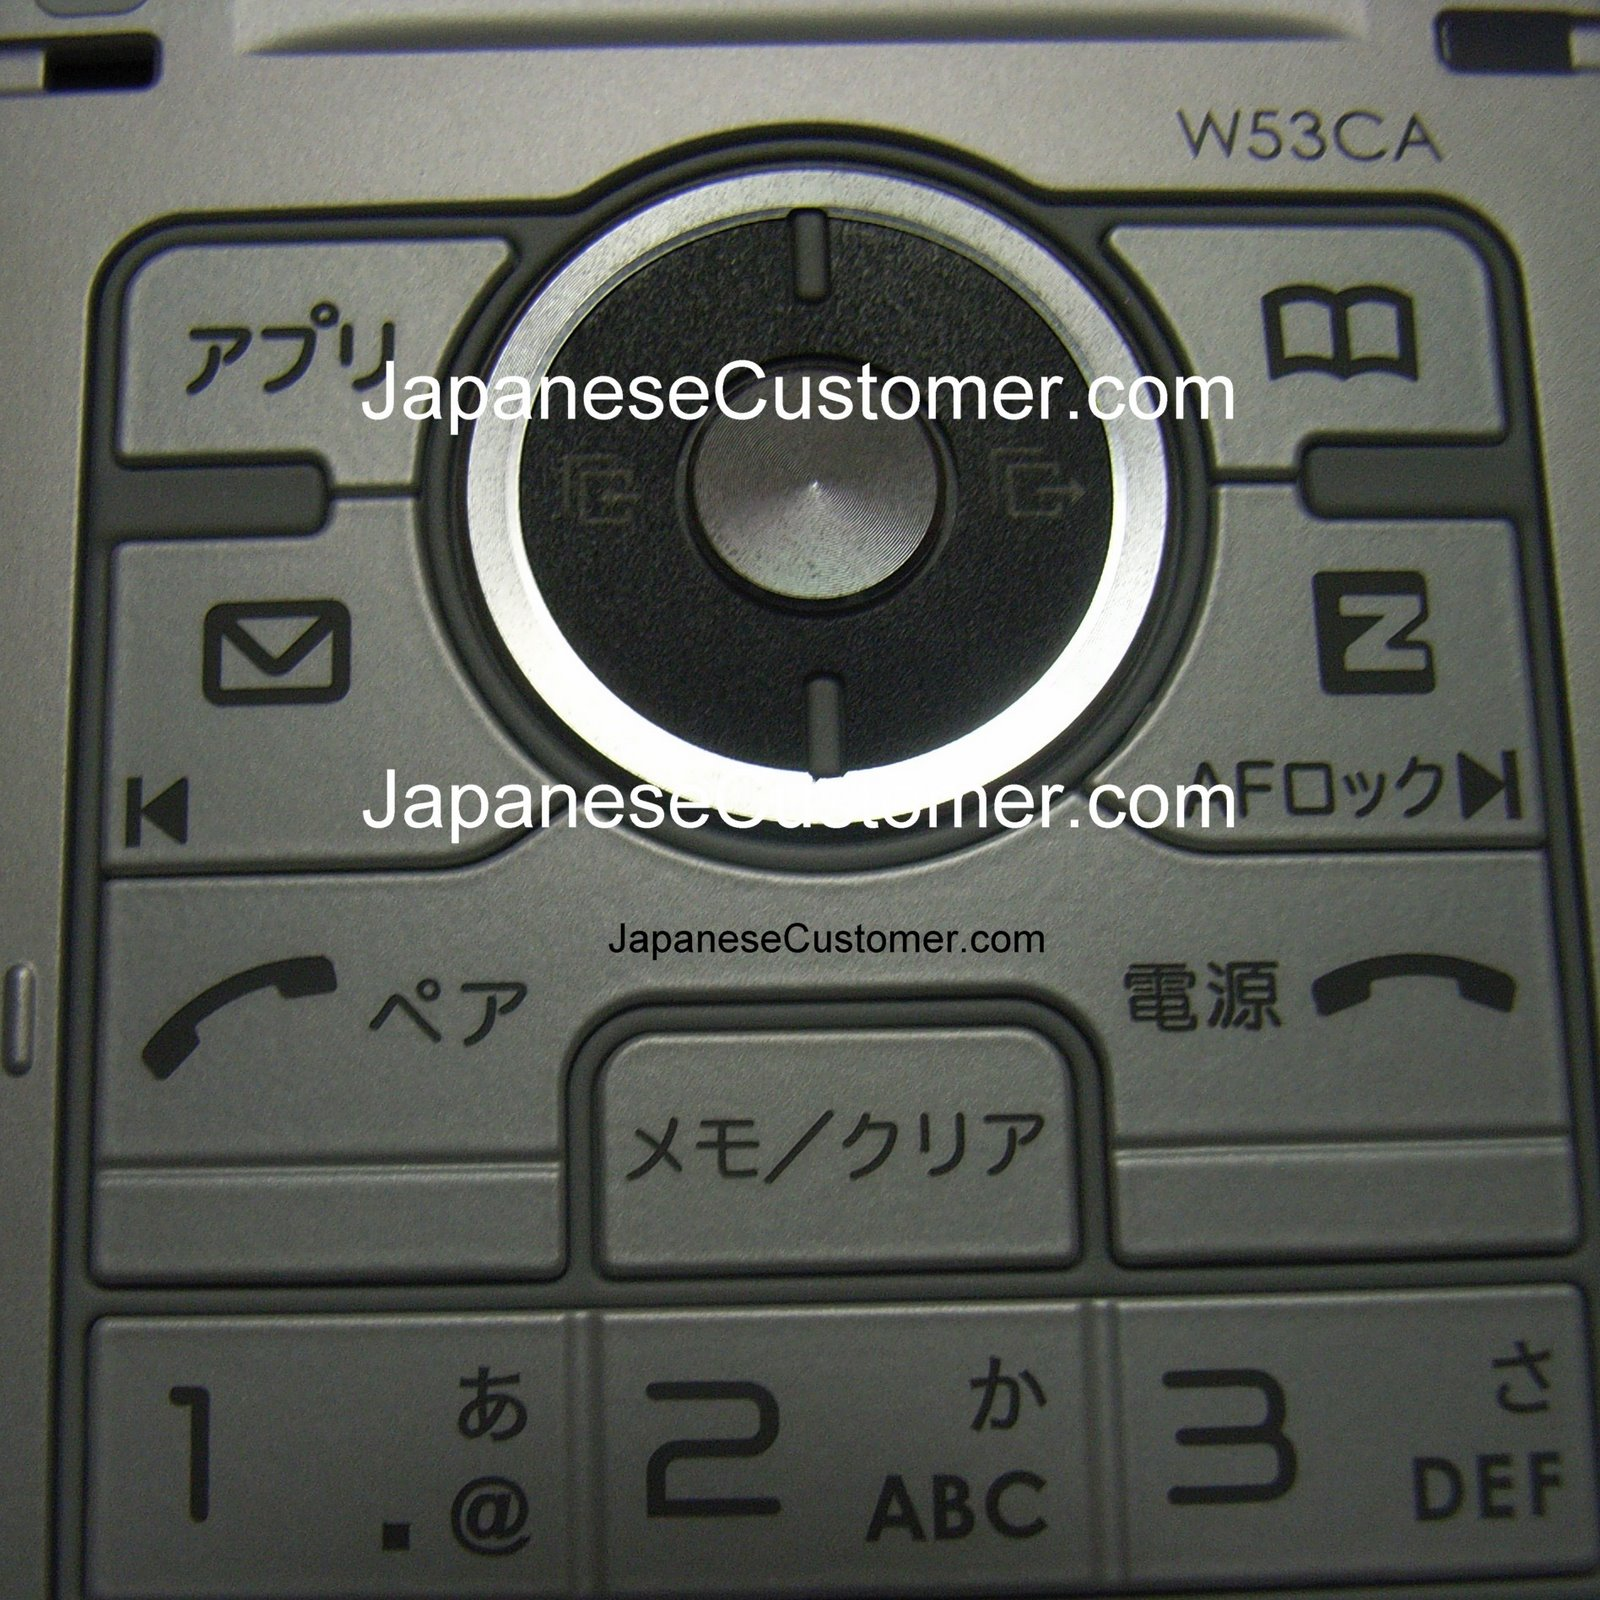 Japanese mobile phone Copyright Peter Hanami 2007